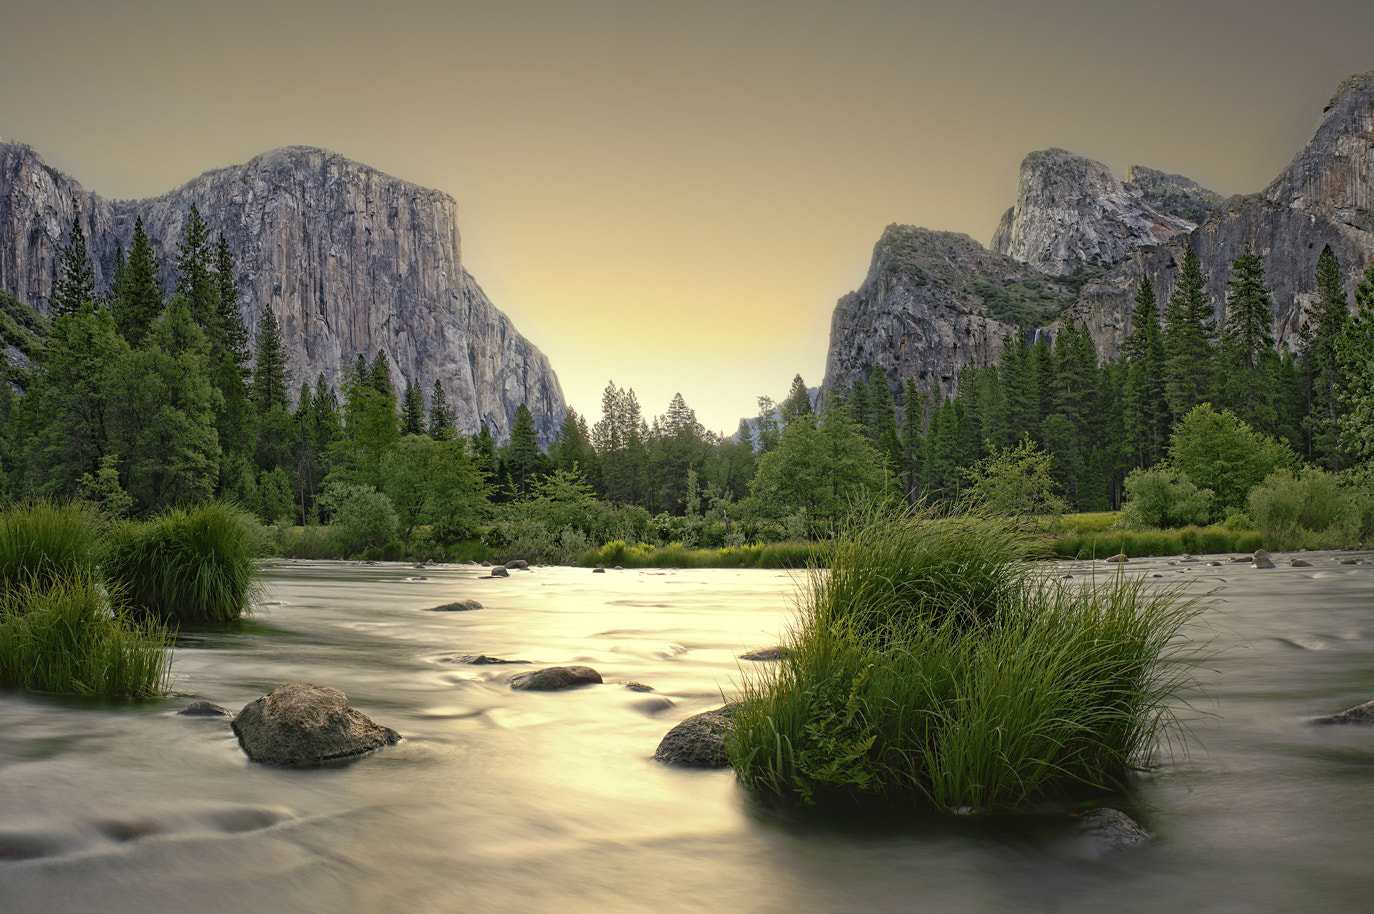 Photograph Yosemite Sunrise by Lee Parks on 500px